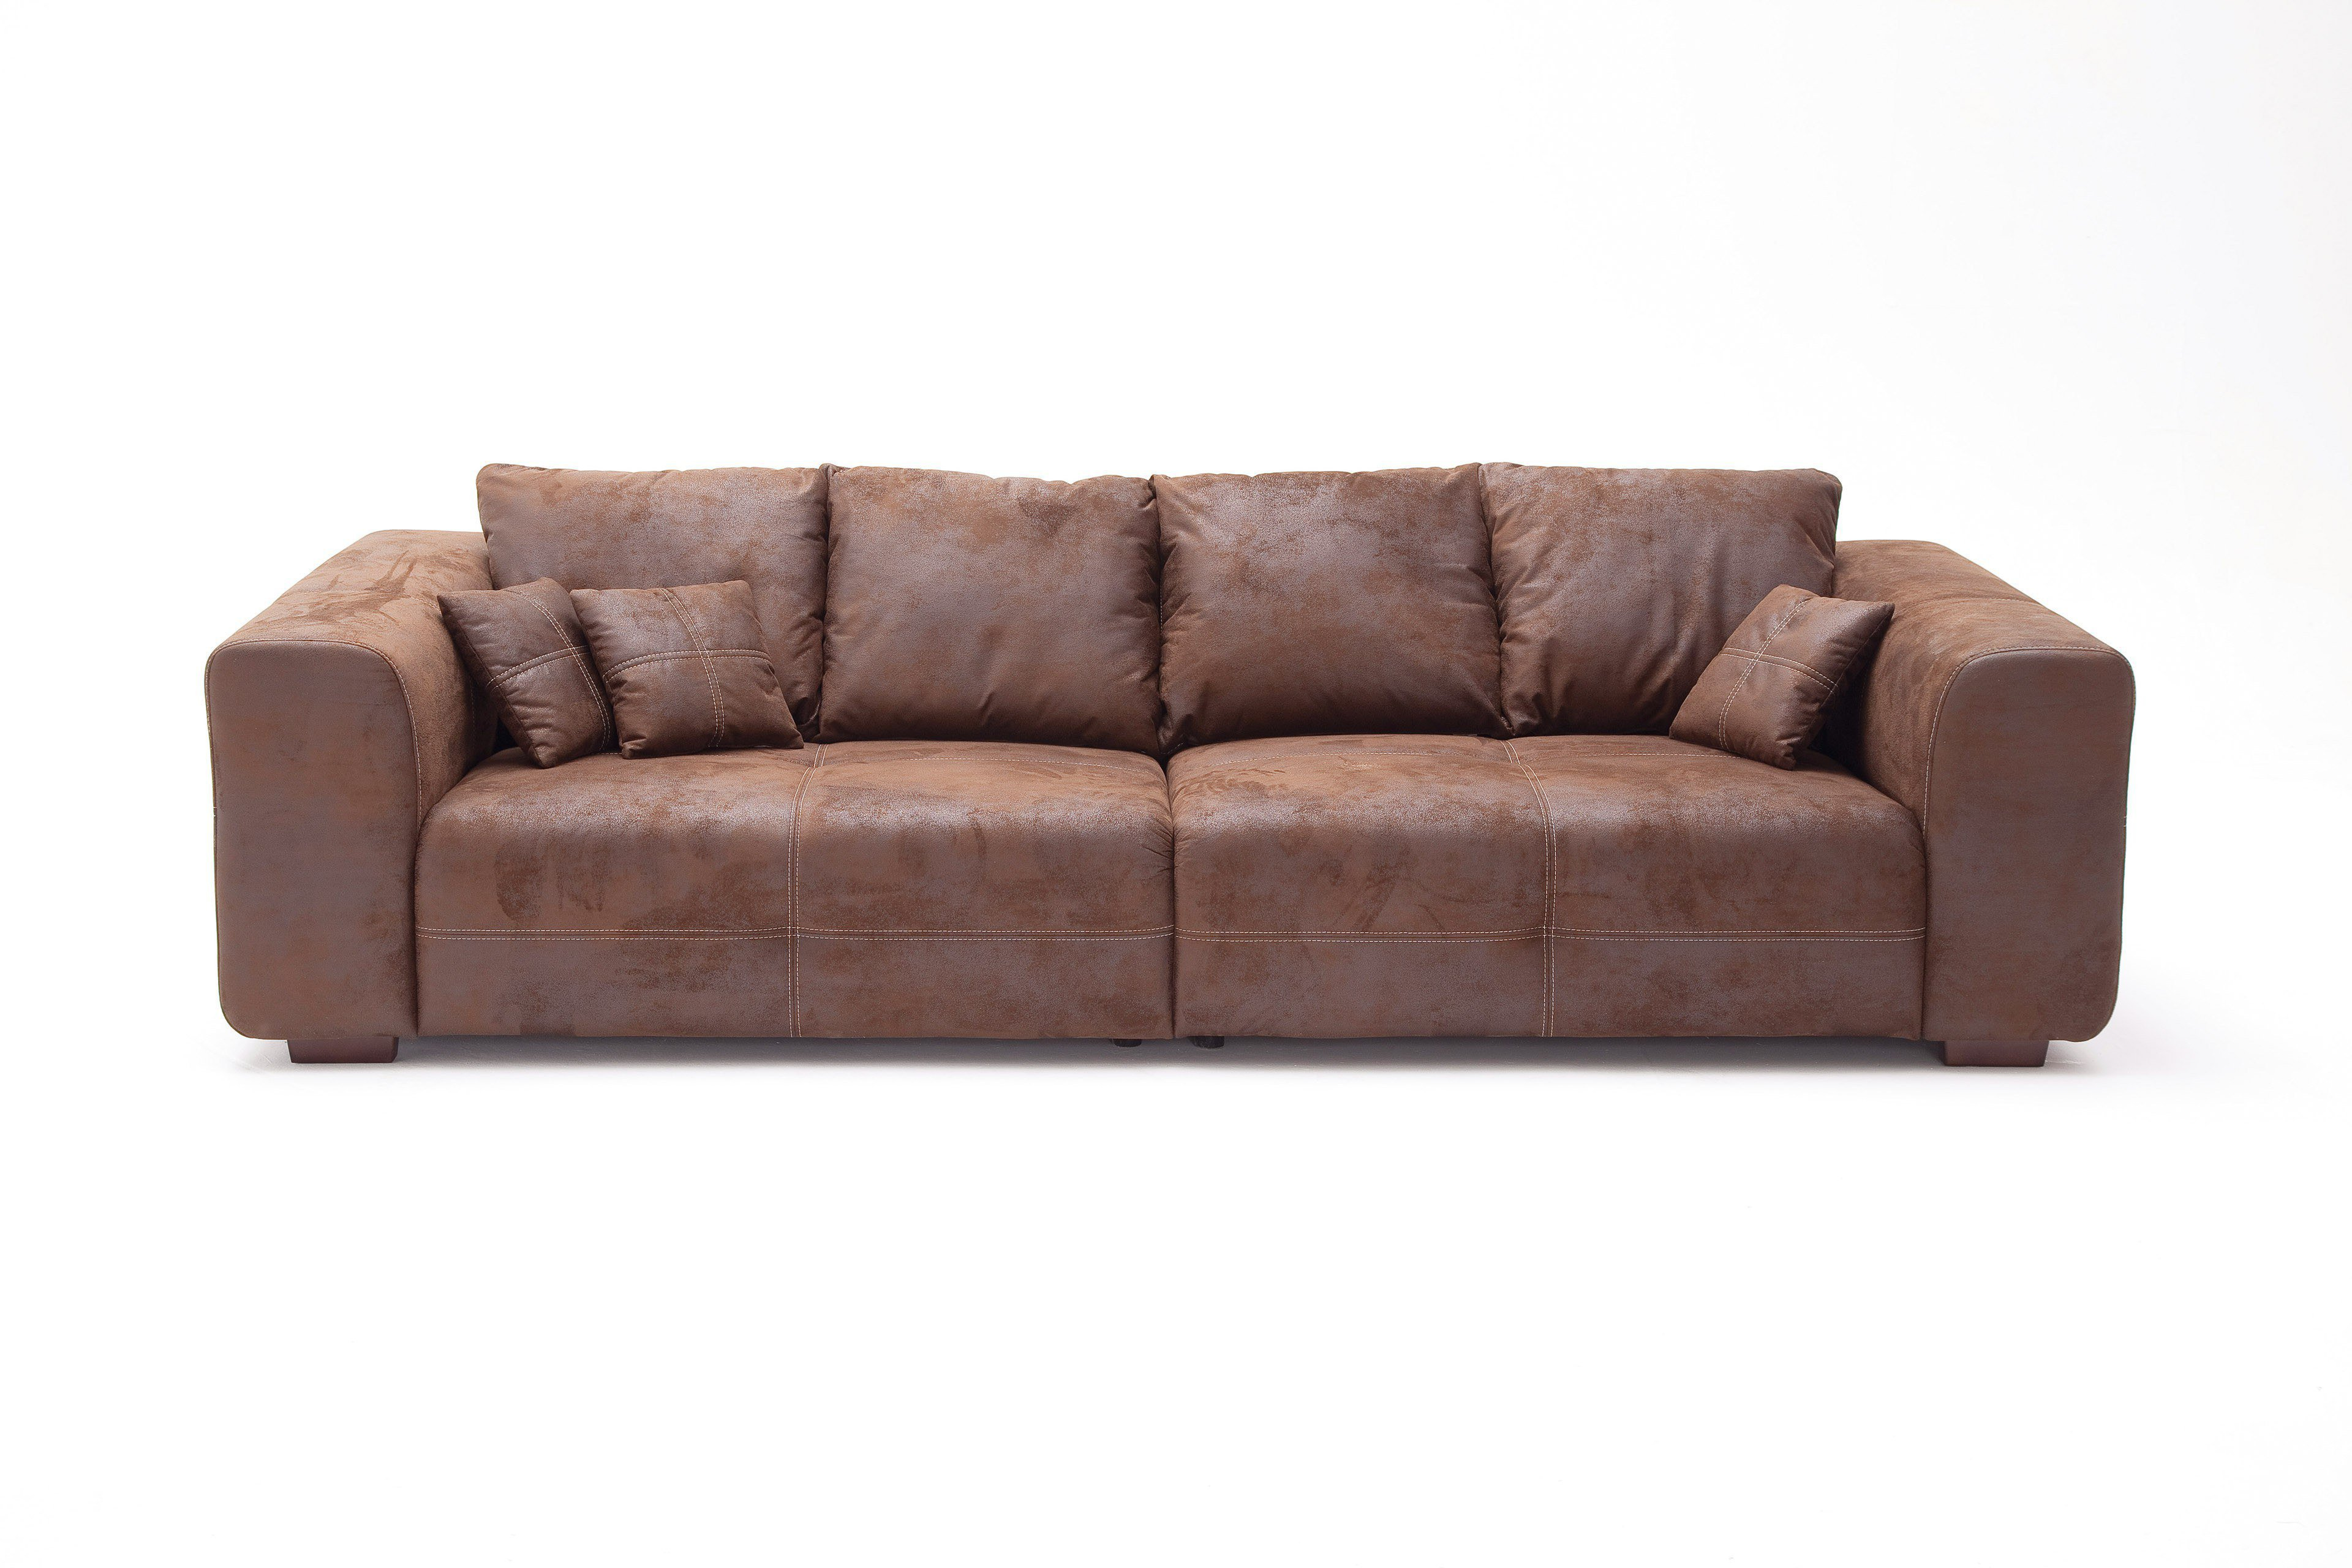 Big Sofa Online Shop Big Sofa Maverick In Braun Von Sit And More Möbel Letz